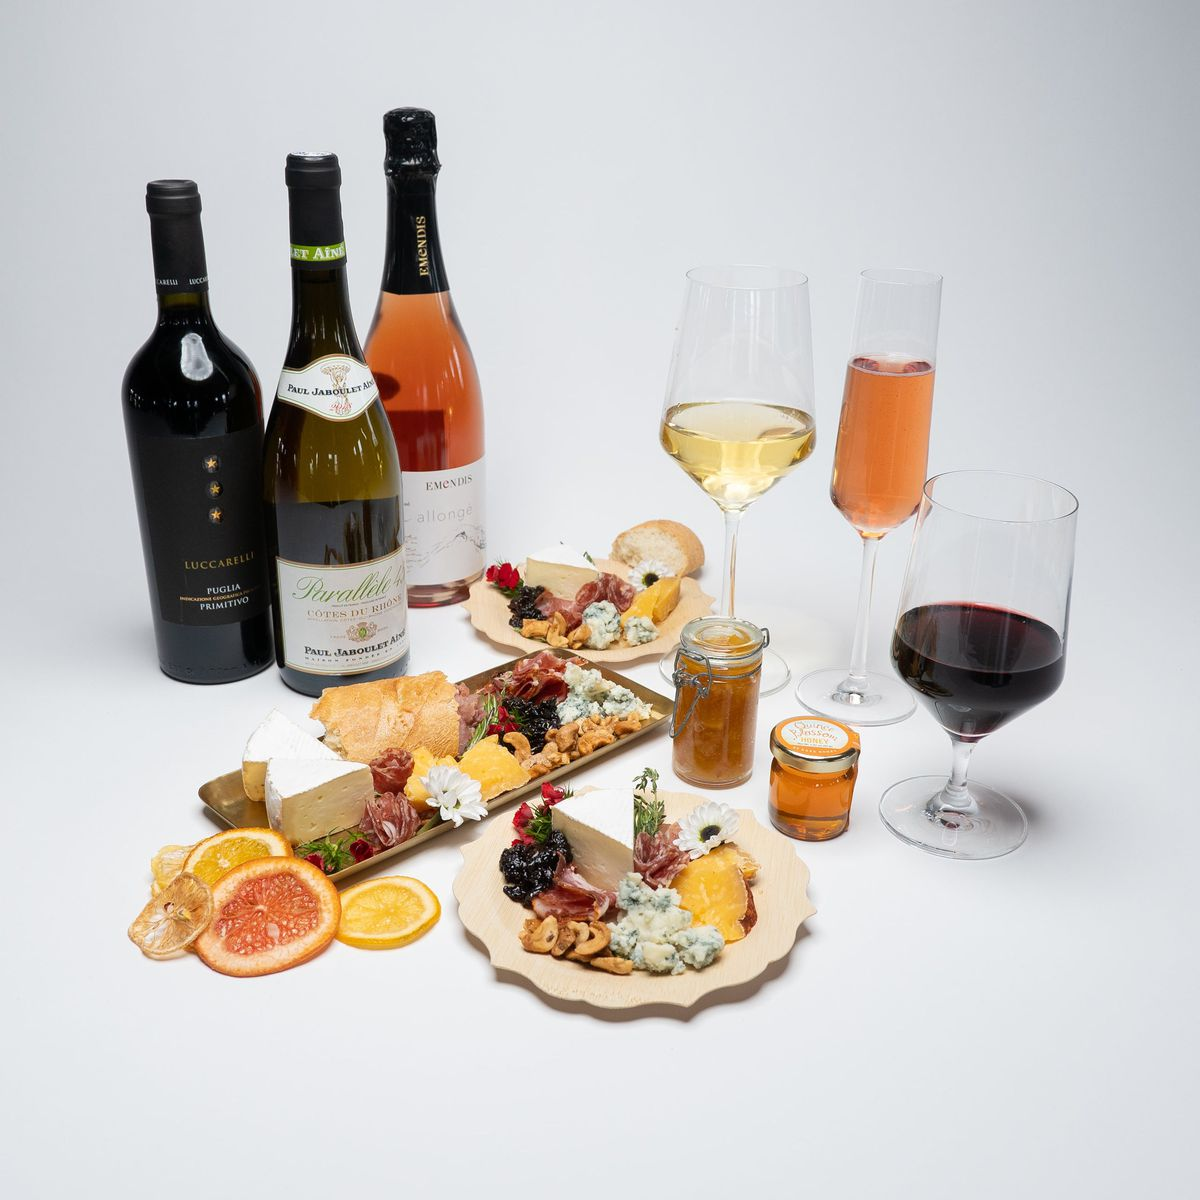 A charcuterie board with cured meats and cheeses is surrounded by three bottles of wine and three glasses.